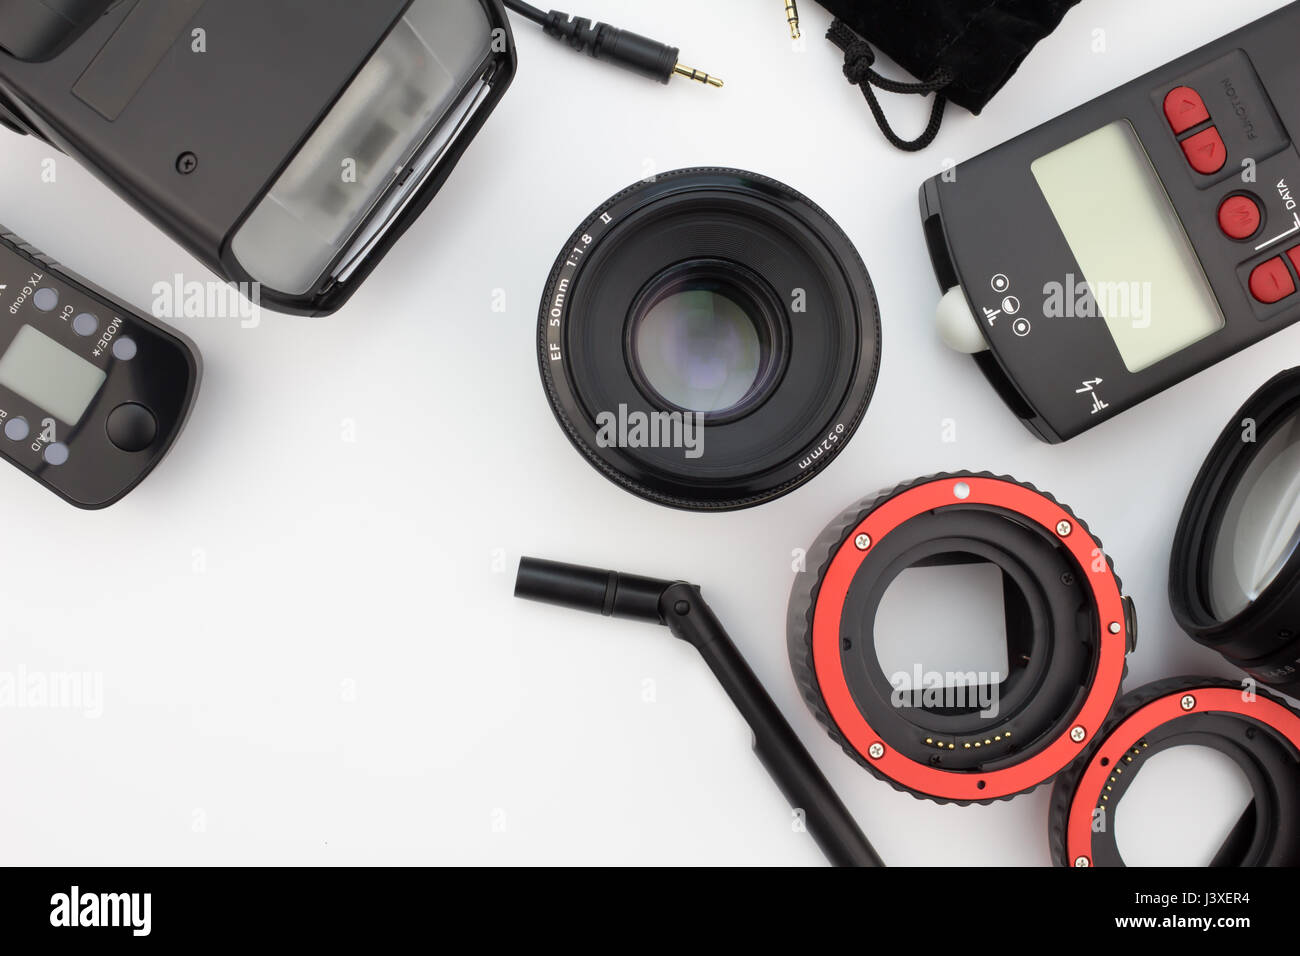 QUEENSTOWN, SOUTH AFRICA - 7 May 2016: Photographic equipment close up isolated on white background - Illustrative - Stock Image